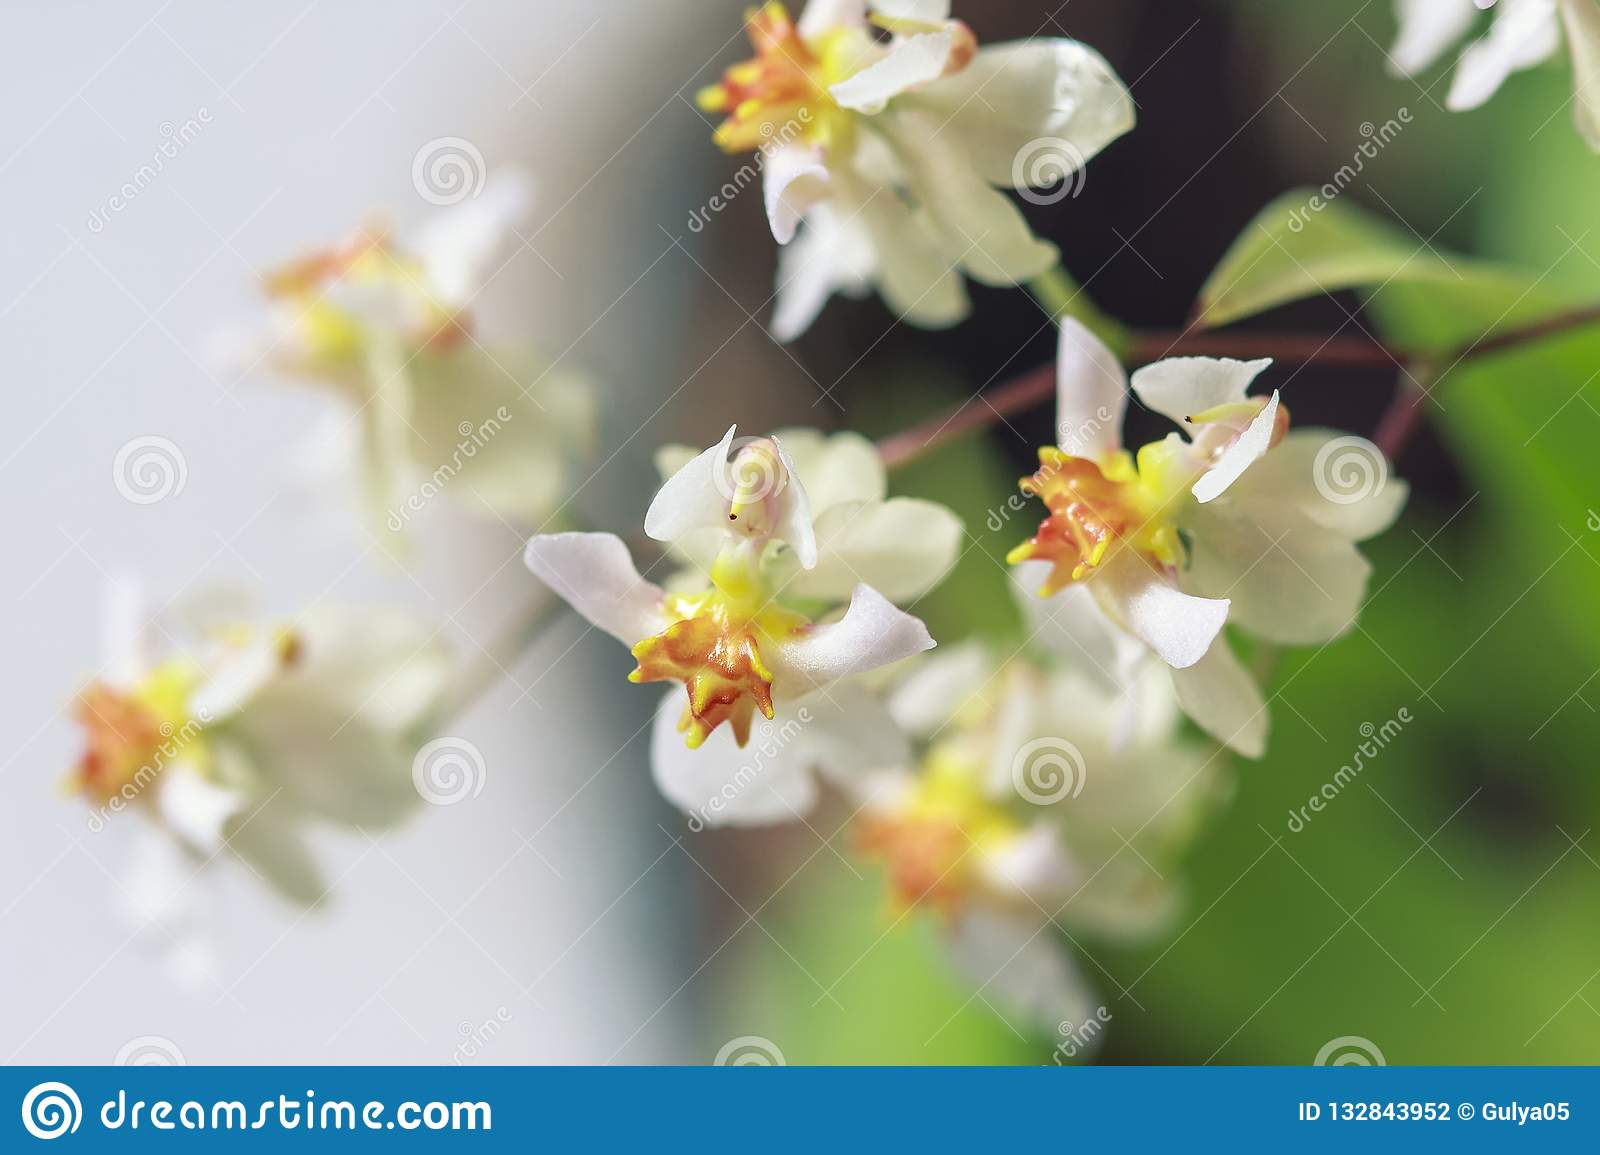 Beautiful closeup of an orchid White Oncidium Twinkle mini orchid